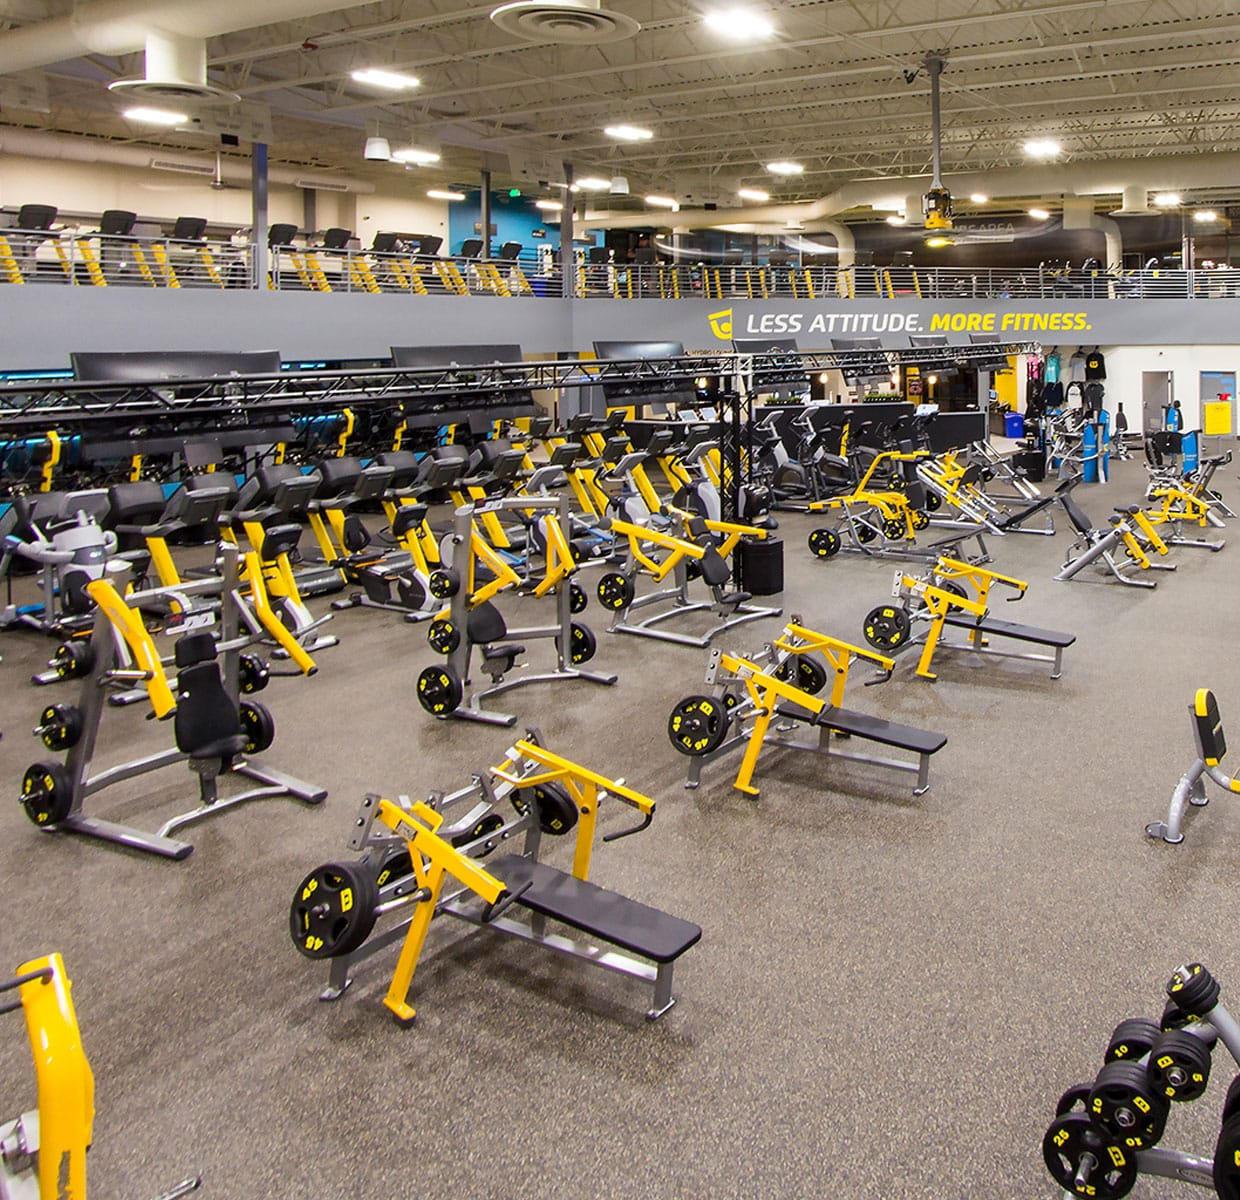 Chuze Fitness: Health Club & Fitness Center | Affordable Gym